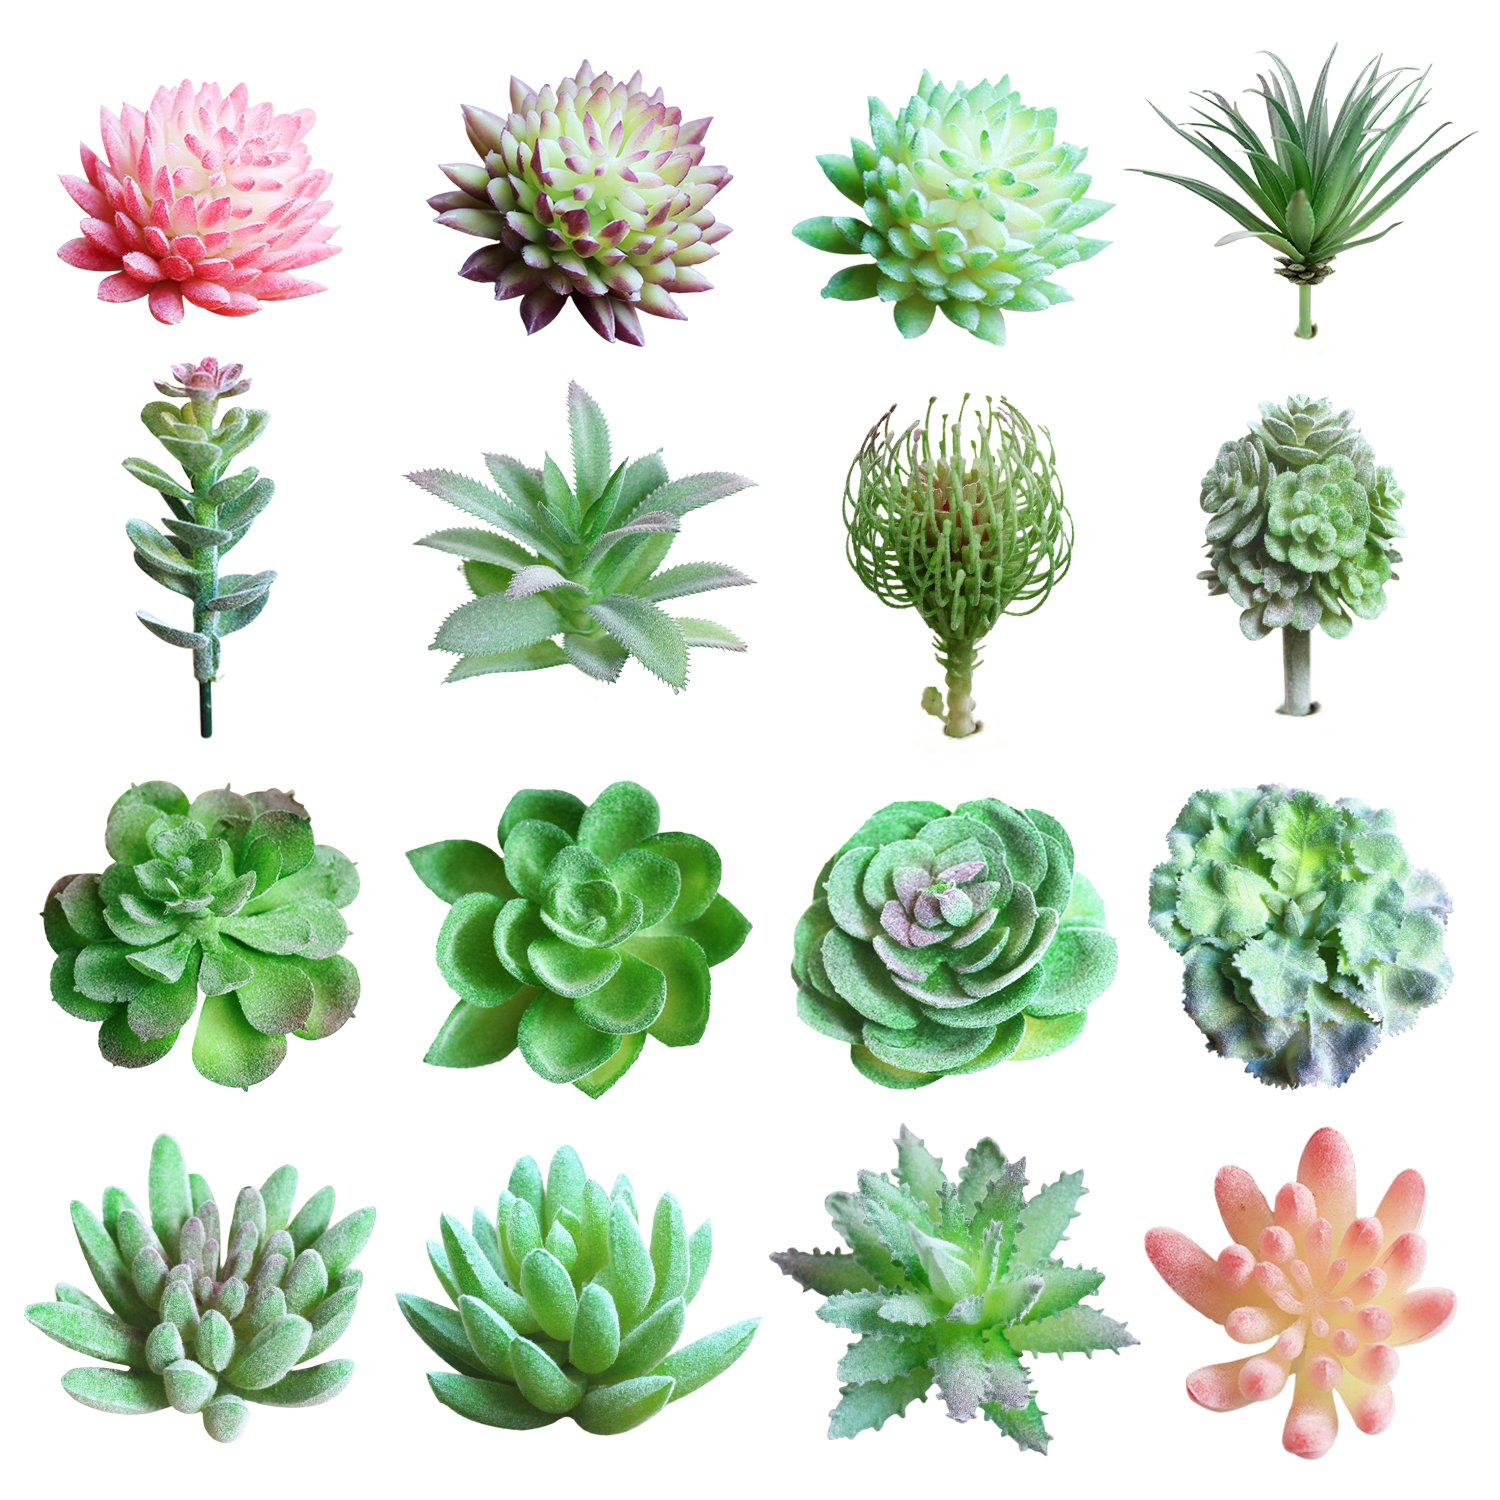 16 Pcs Artificial Succulent Mixed Flowers Plants Succulent Unpotted Decor Stems Artificial Succulents Plants for Home Indoor Wall Garden DIY Decorations